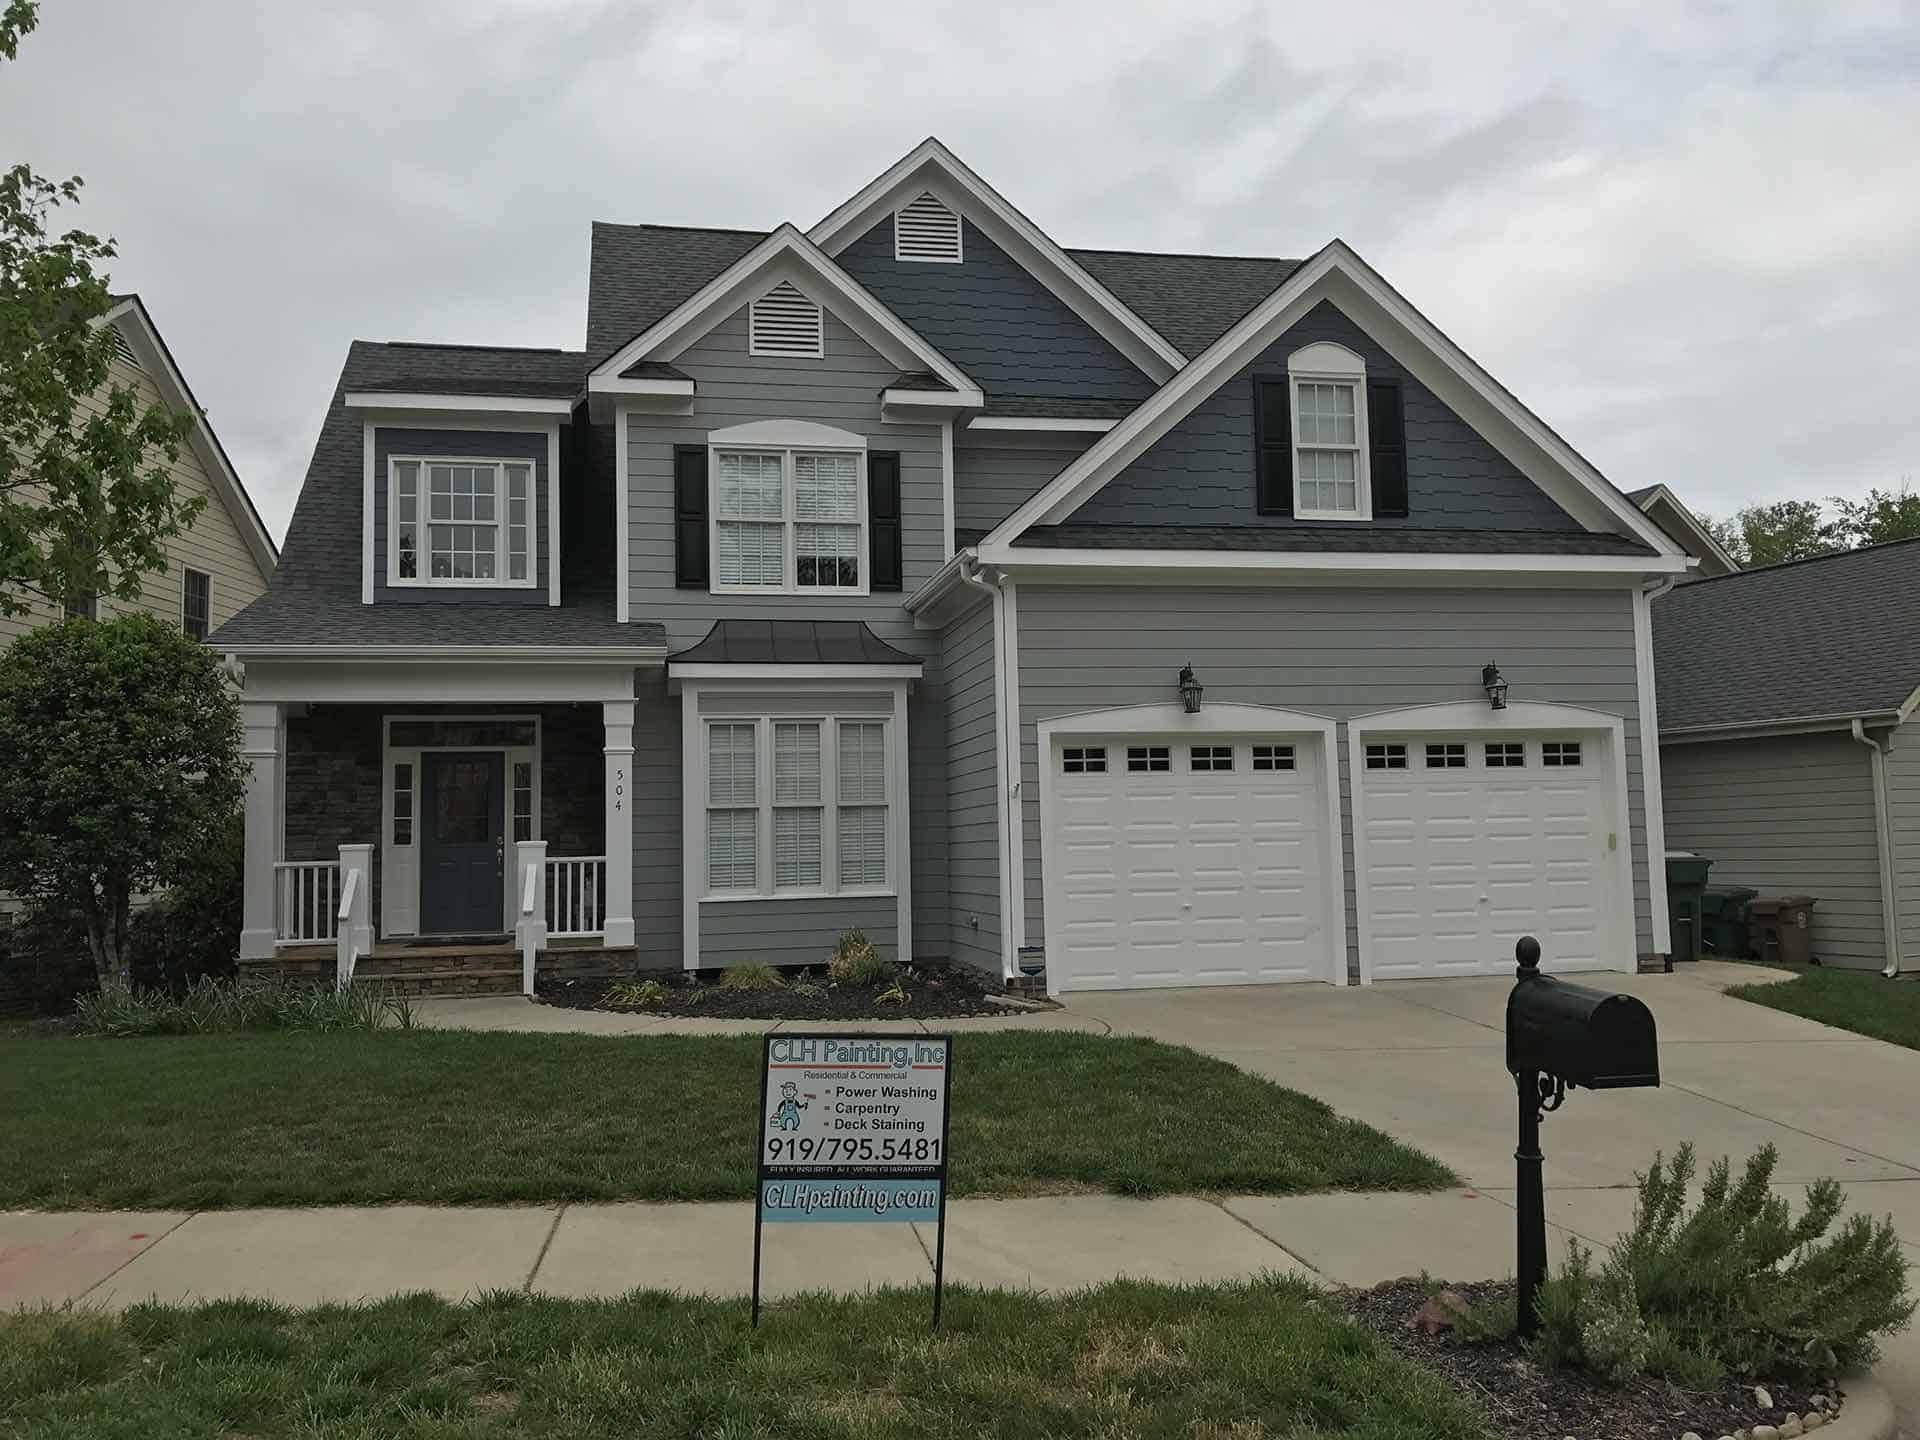 Raleigh house painting contractor